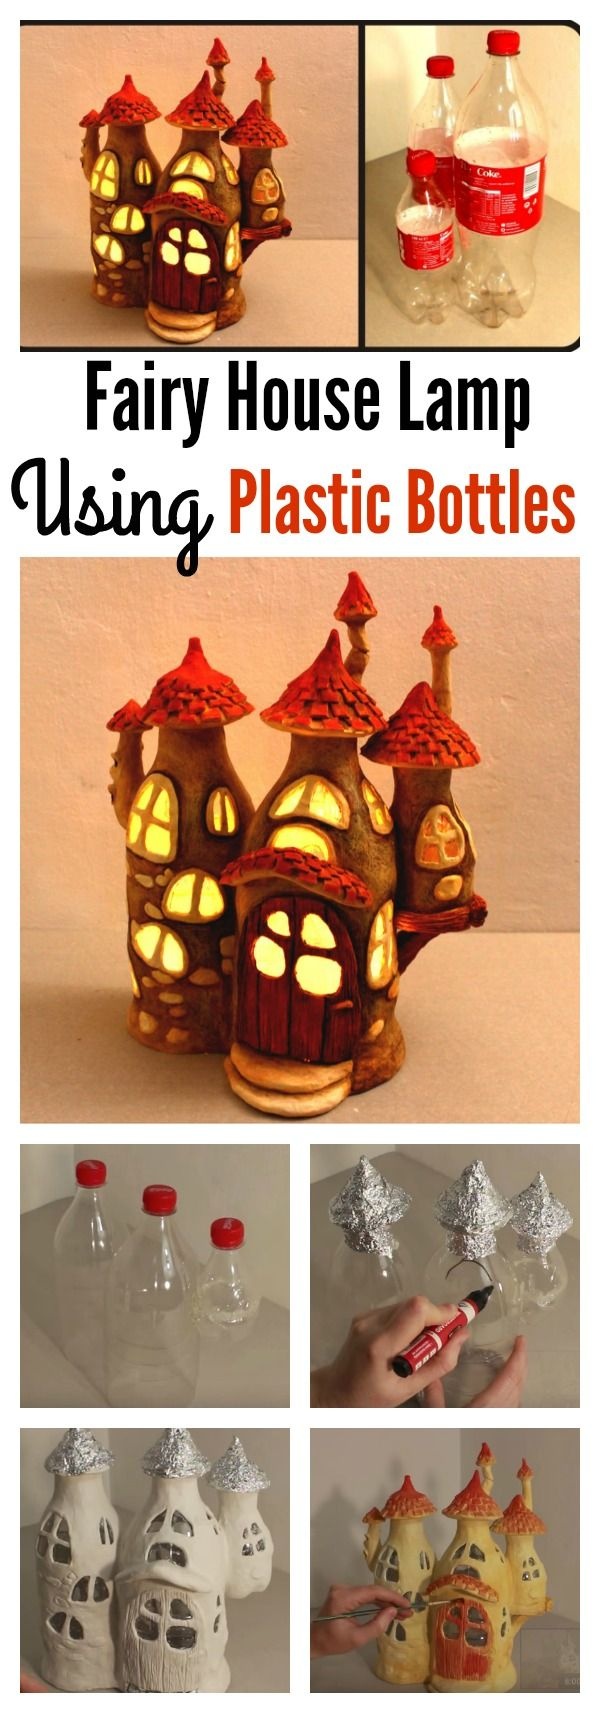 fairy house lamp using plastic bottles paper clay fairy houses diy fairy house lamp using plastic bottles